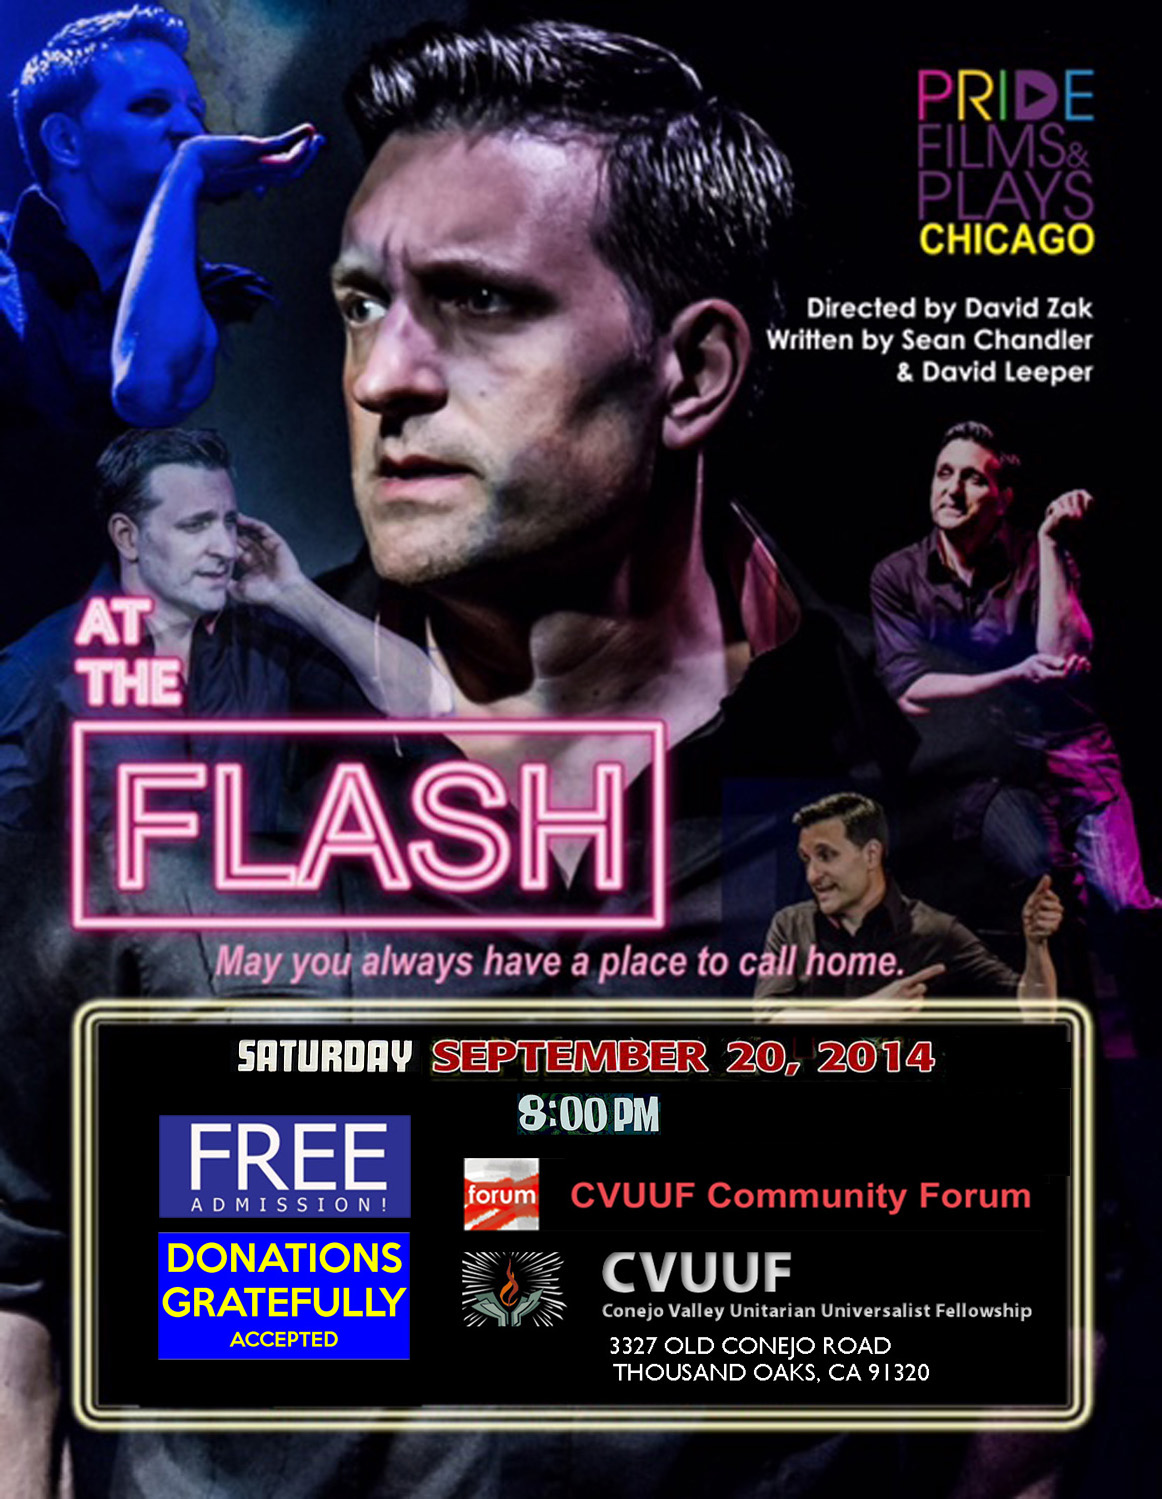 at the flash_NEW_edited 7.26 REV